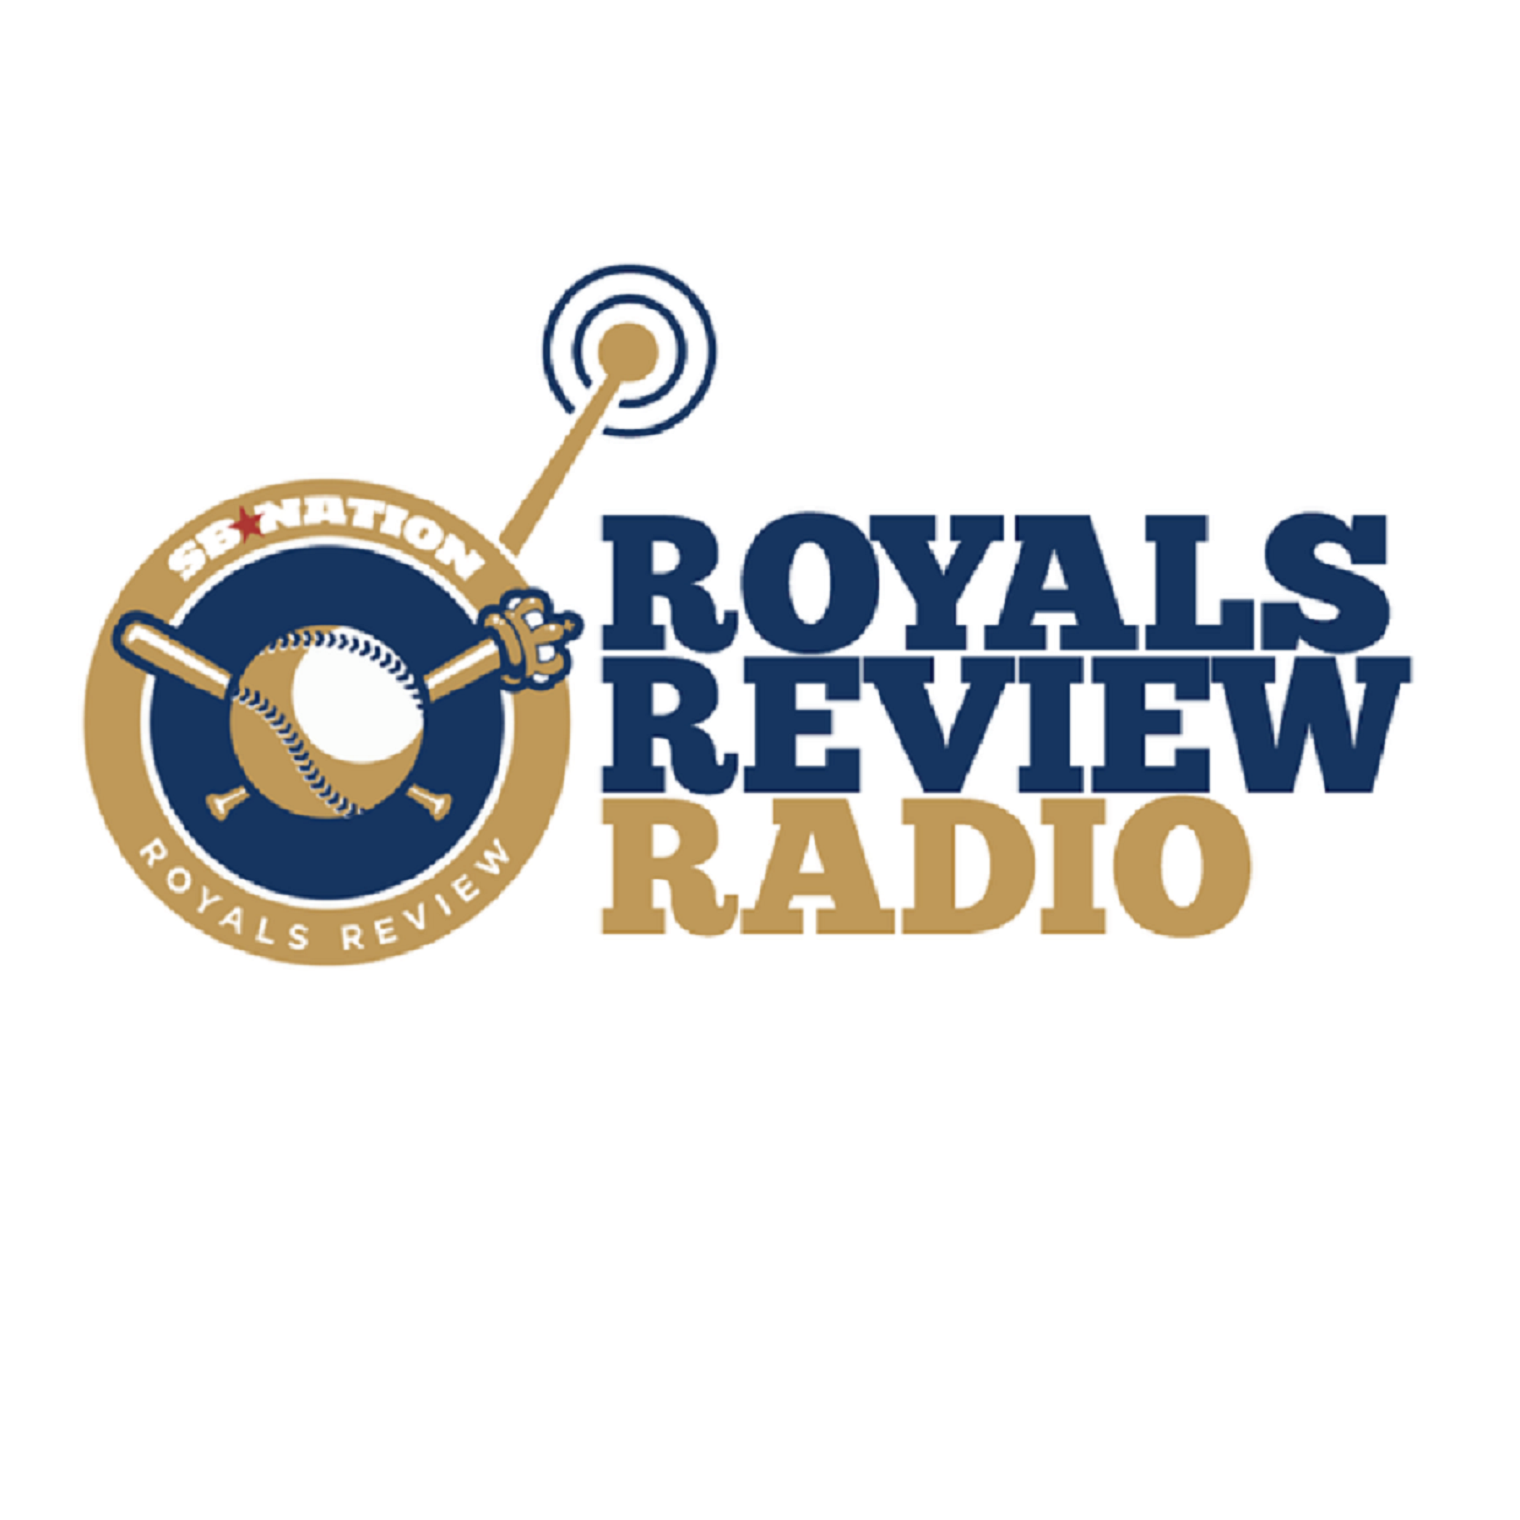 RoyalsReview